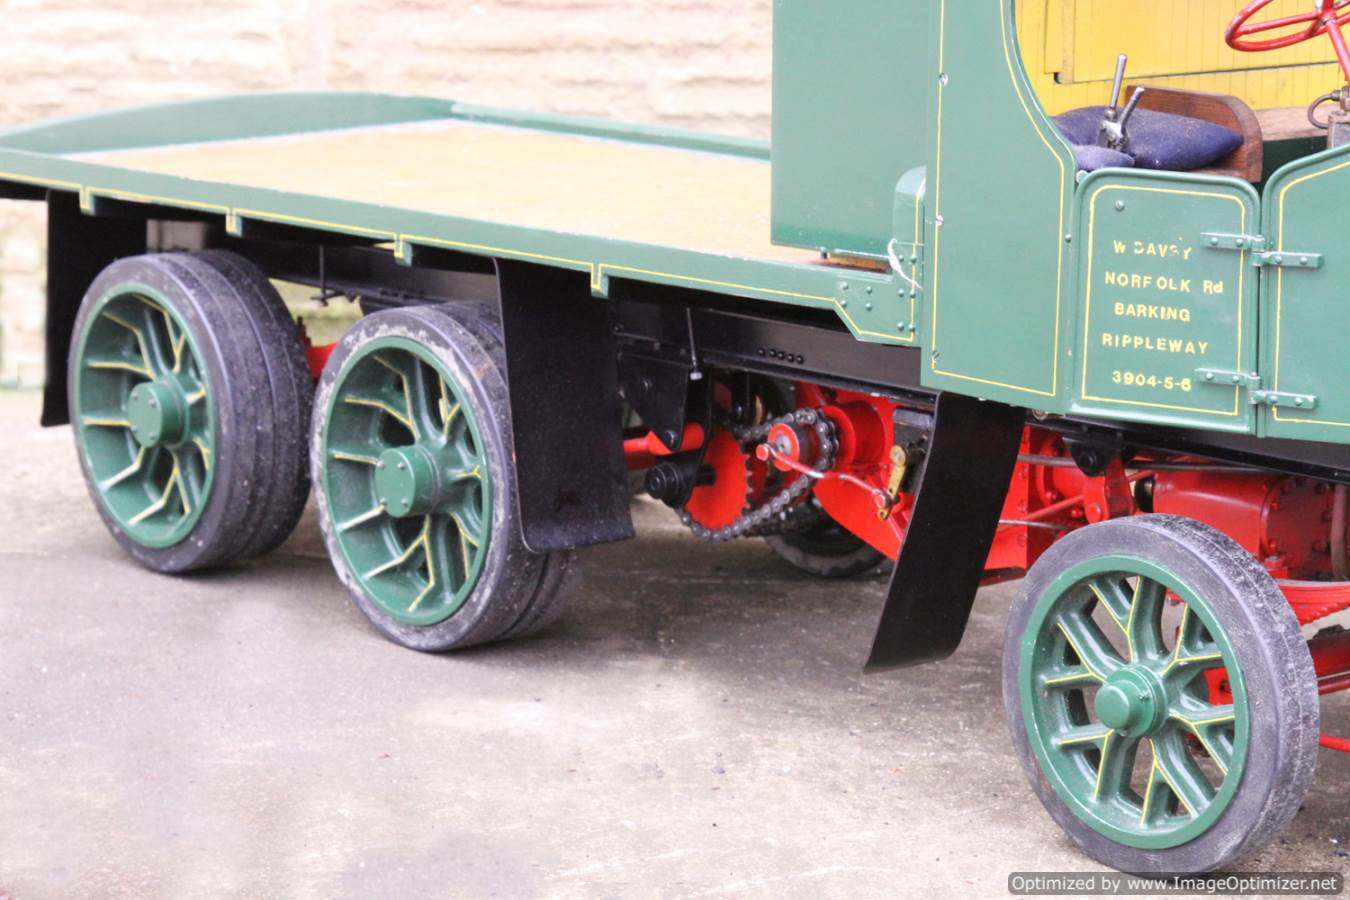 test Cayton twin axle live steam lorry for sale 05 Optimized